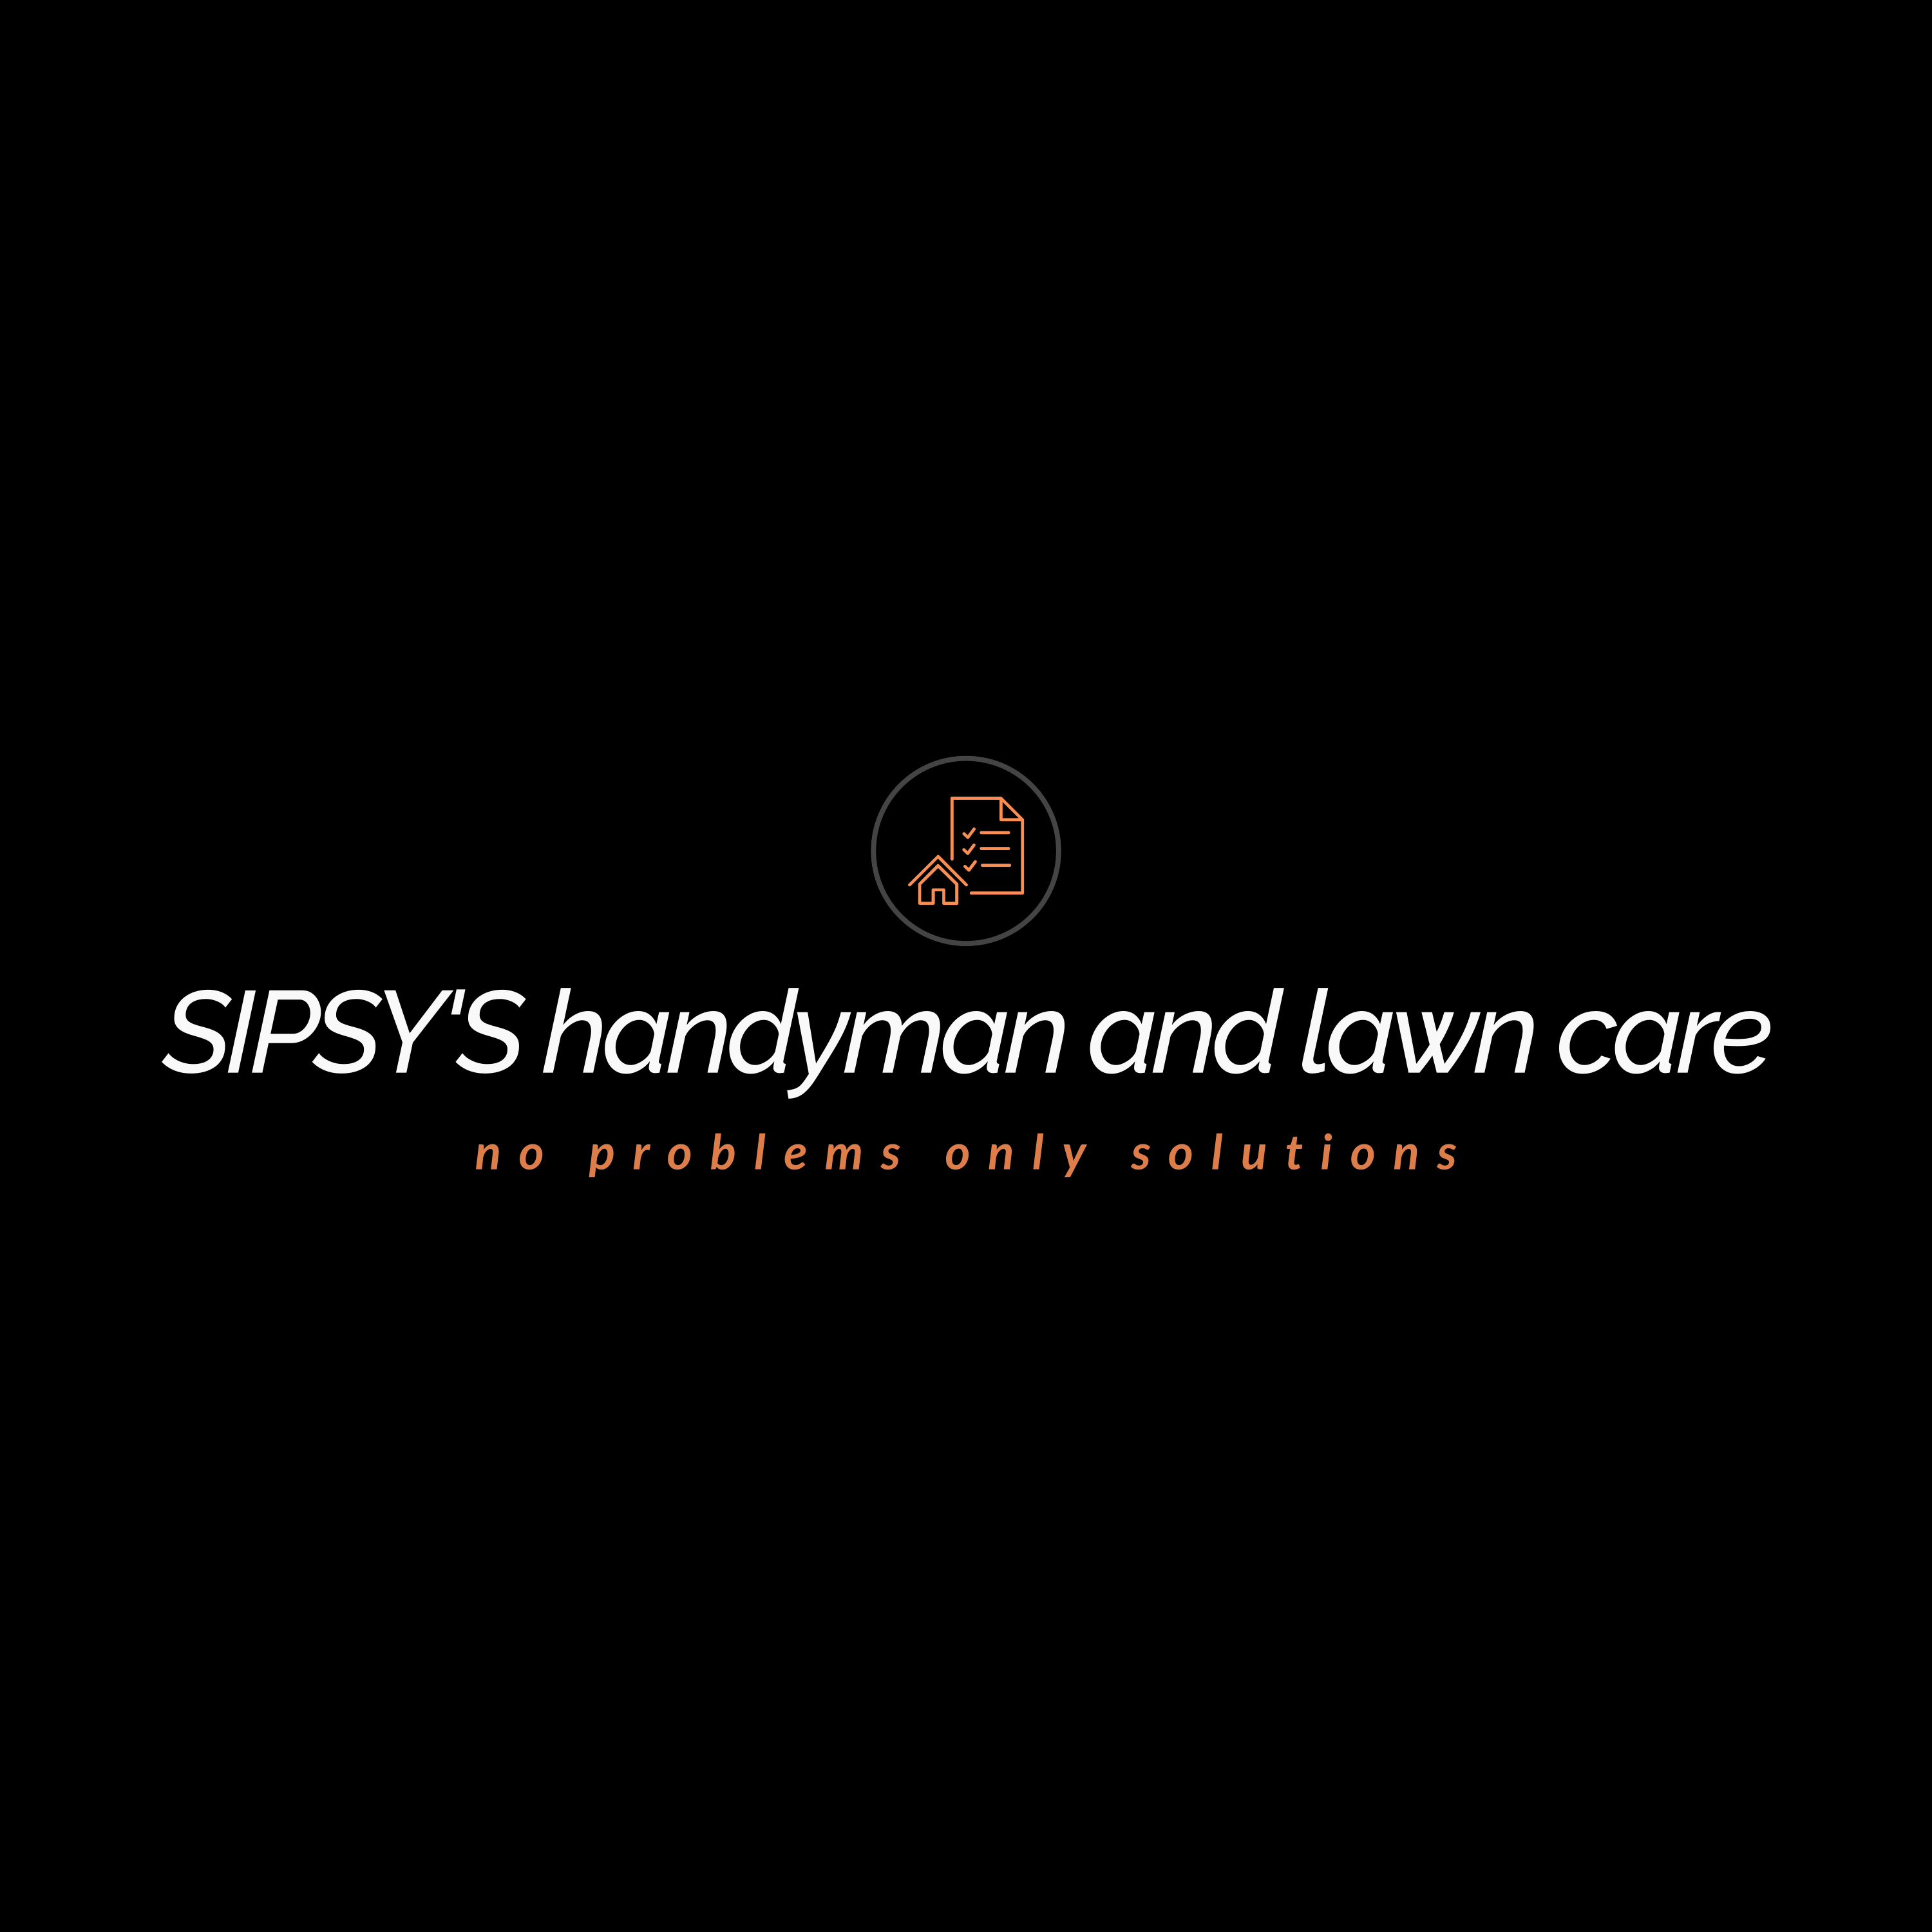 SIPSY'S handyman and lawn care